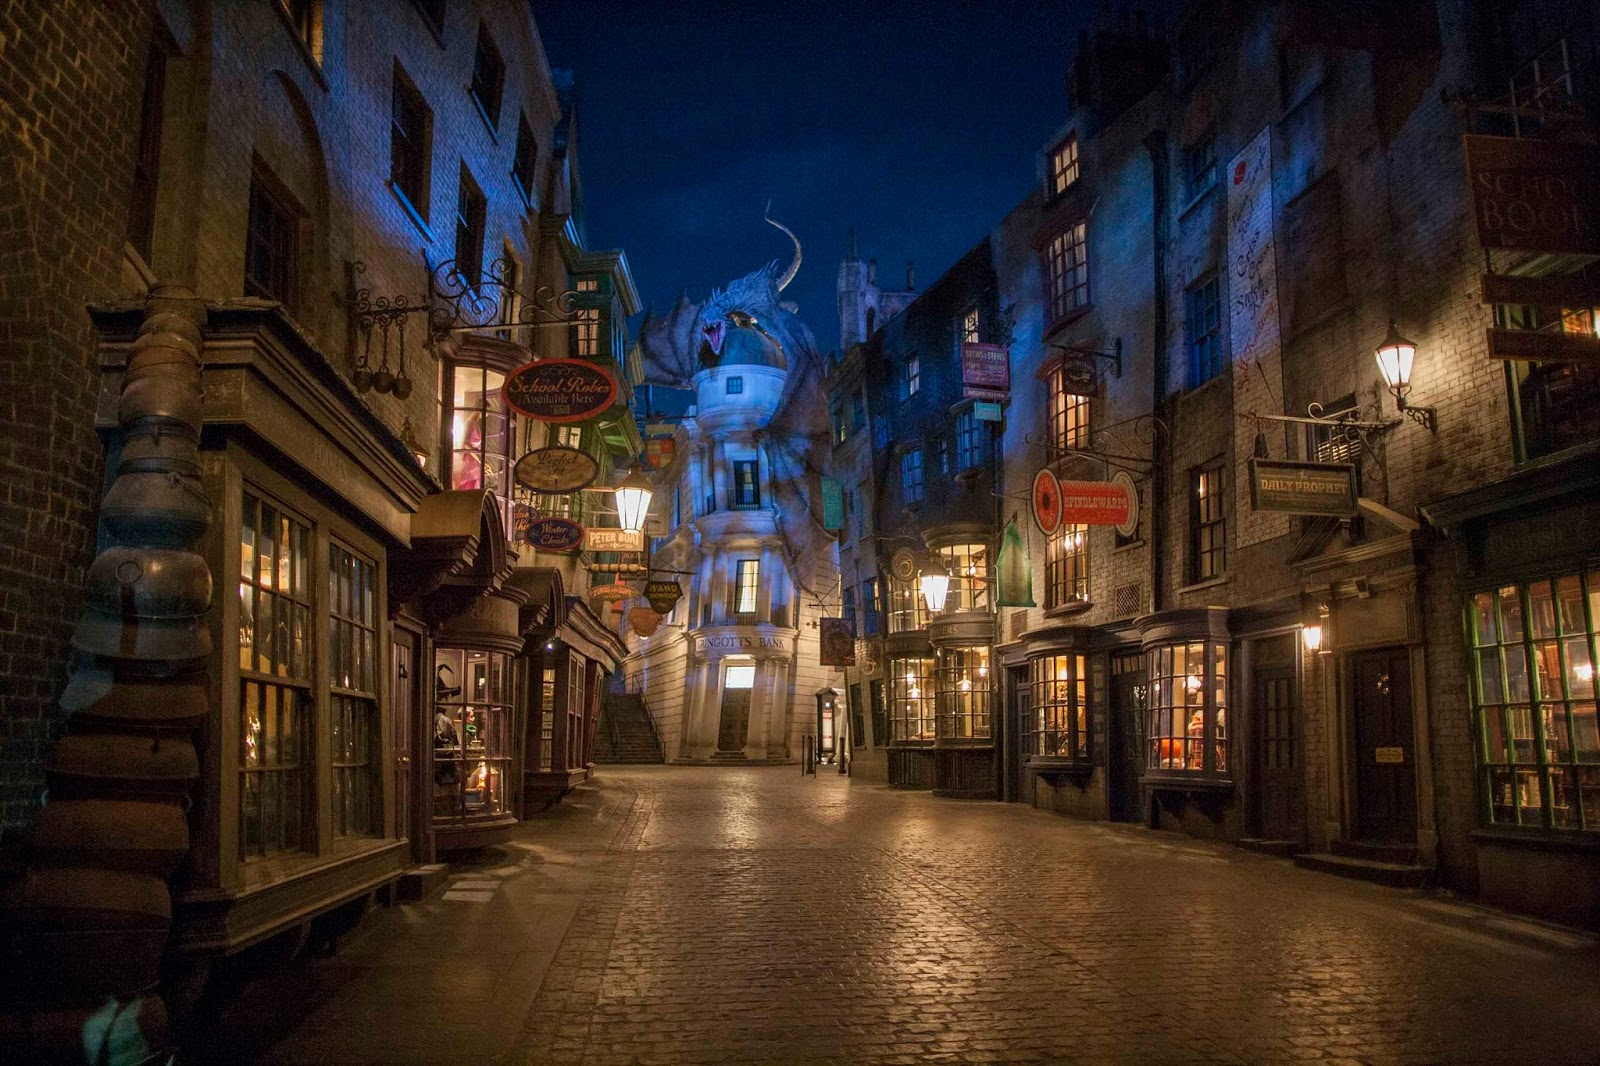 NewsPlusNotes: The Wizarding World of Harry Potter: Diagon Alley ...